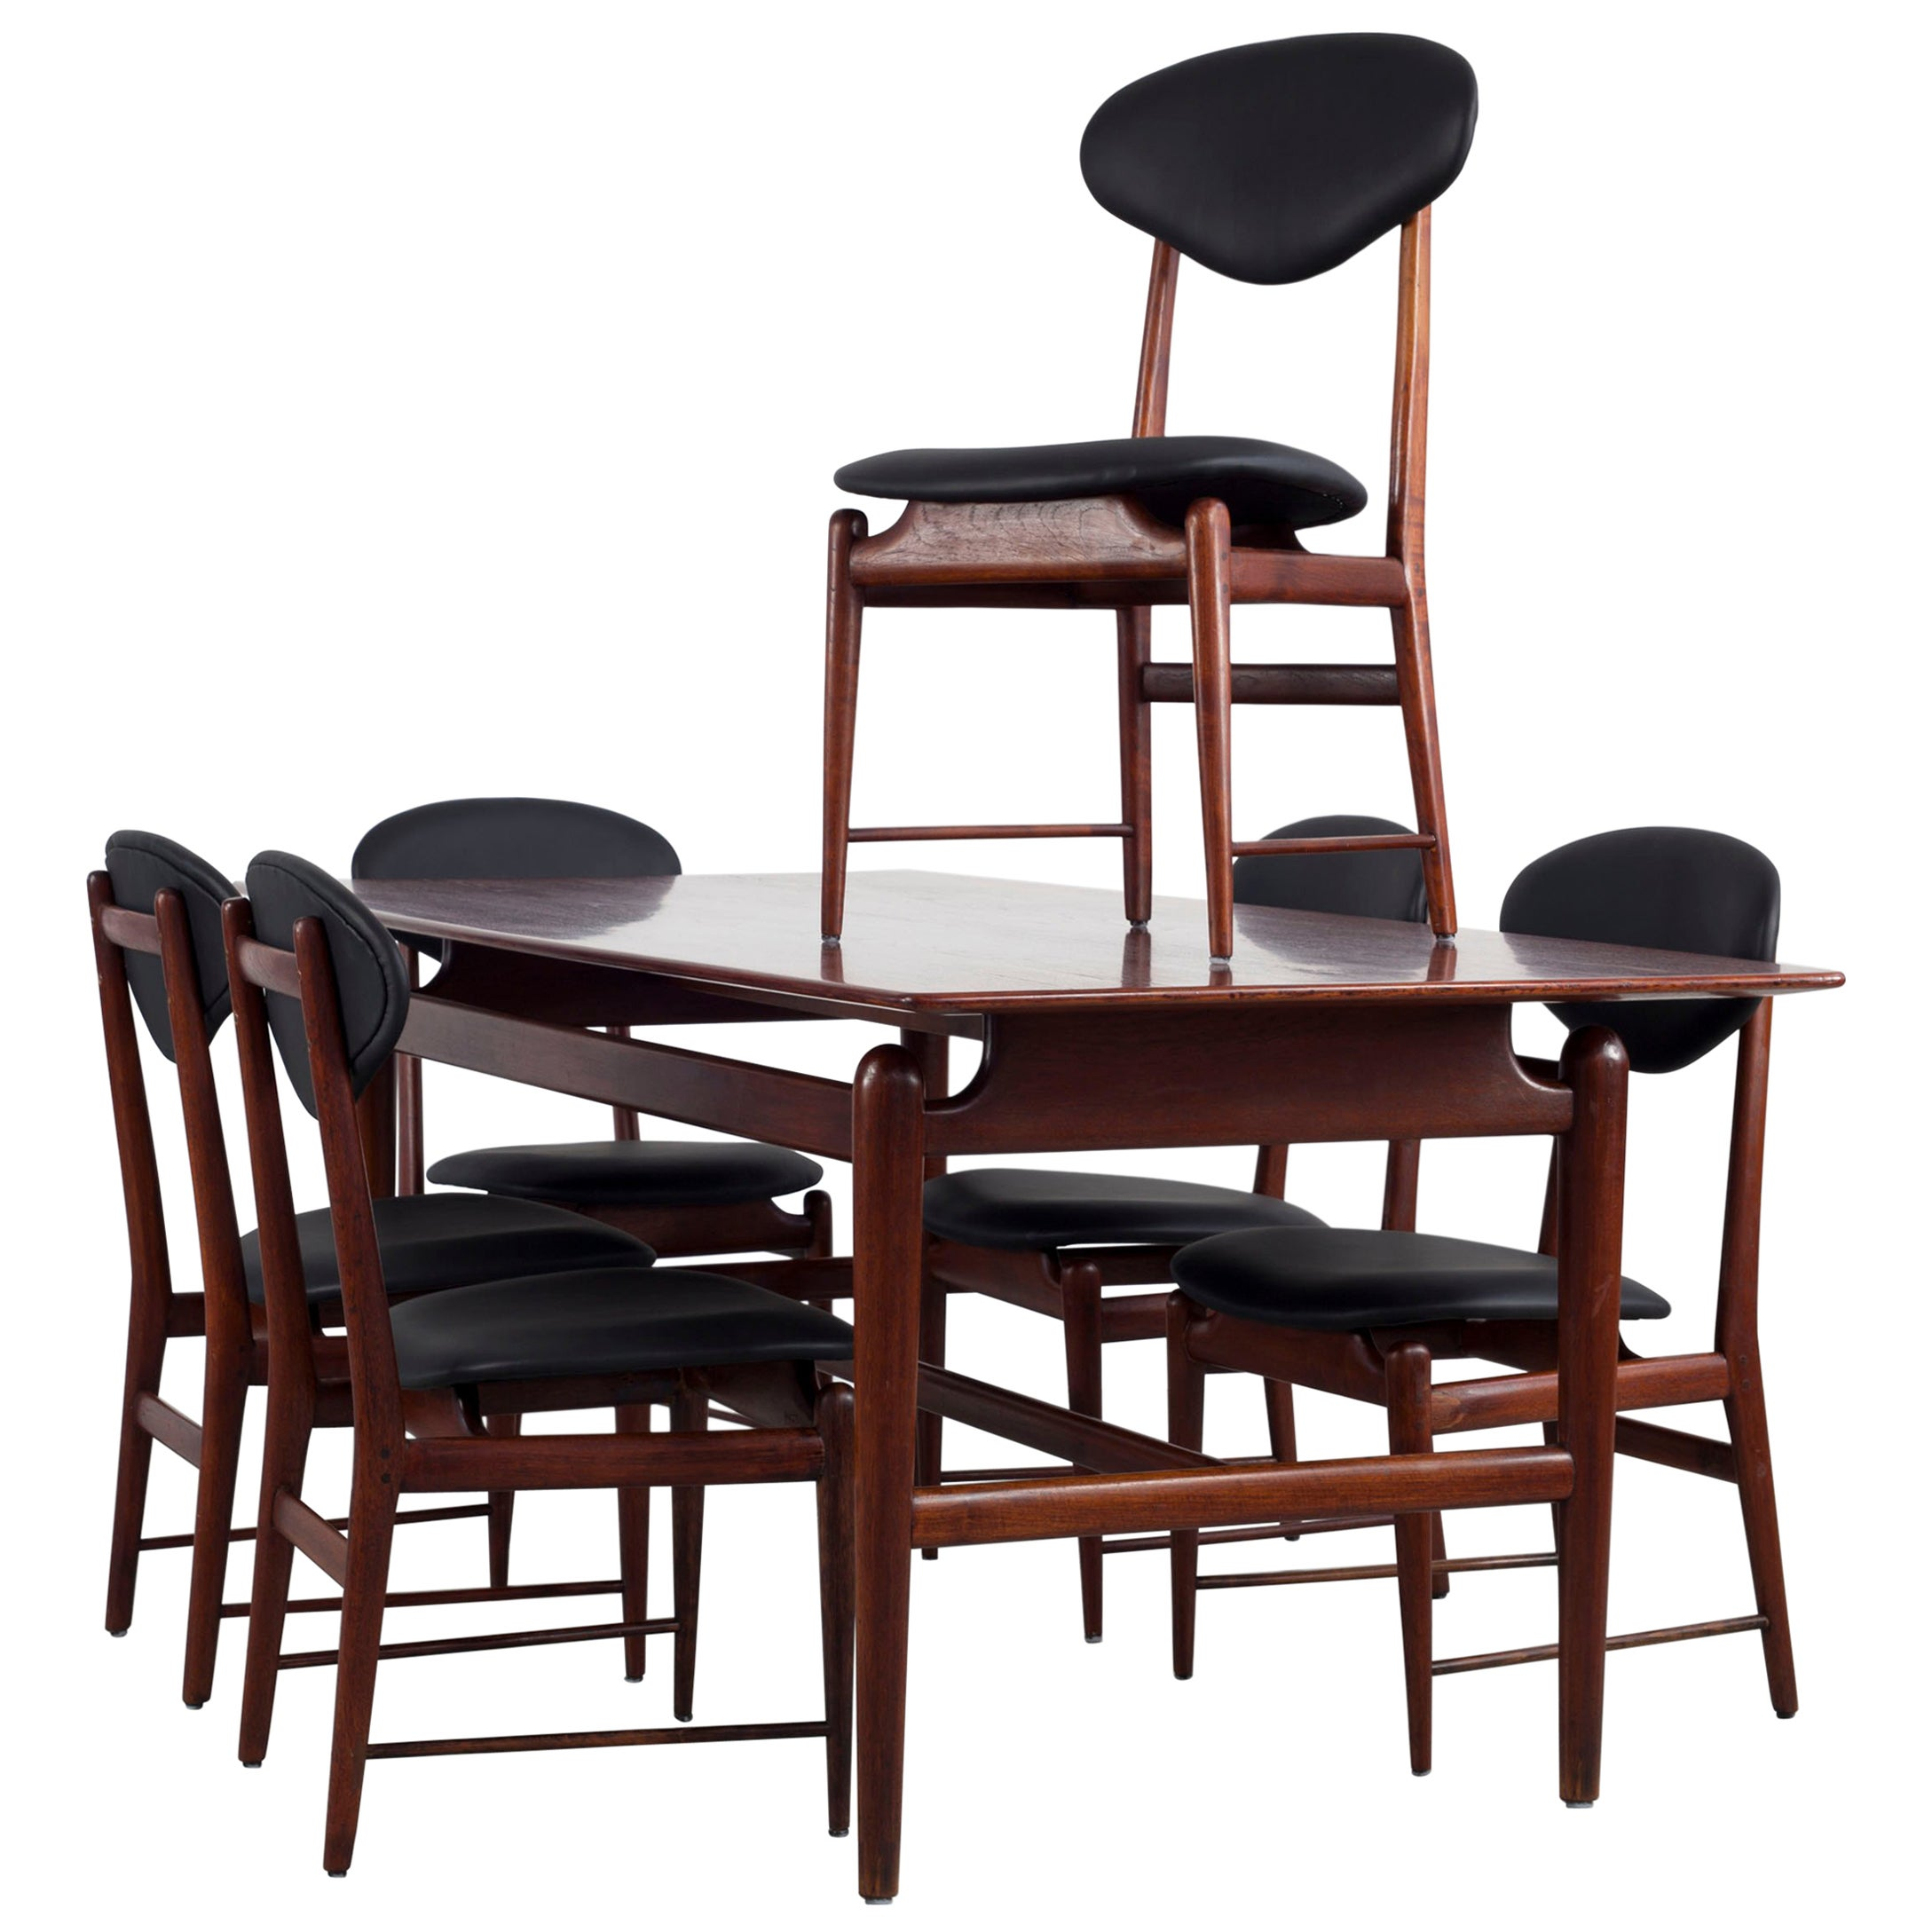 Set of Italian Dark Teak Wood Dining Table and 6 Chairs, 1950s